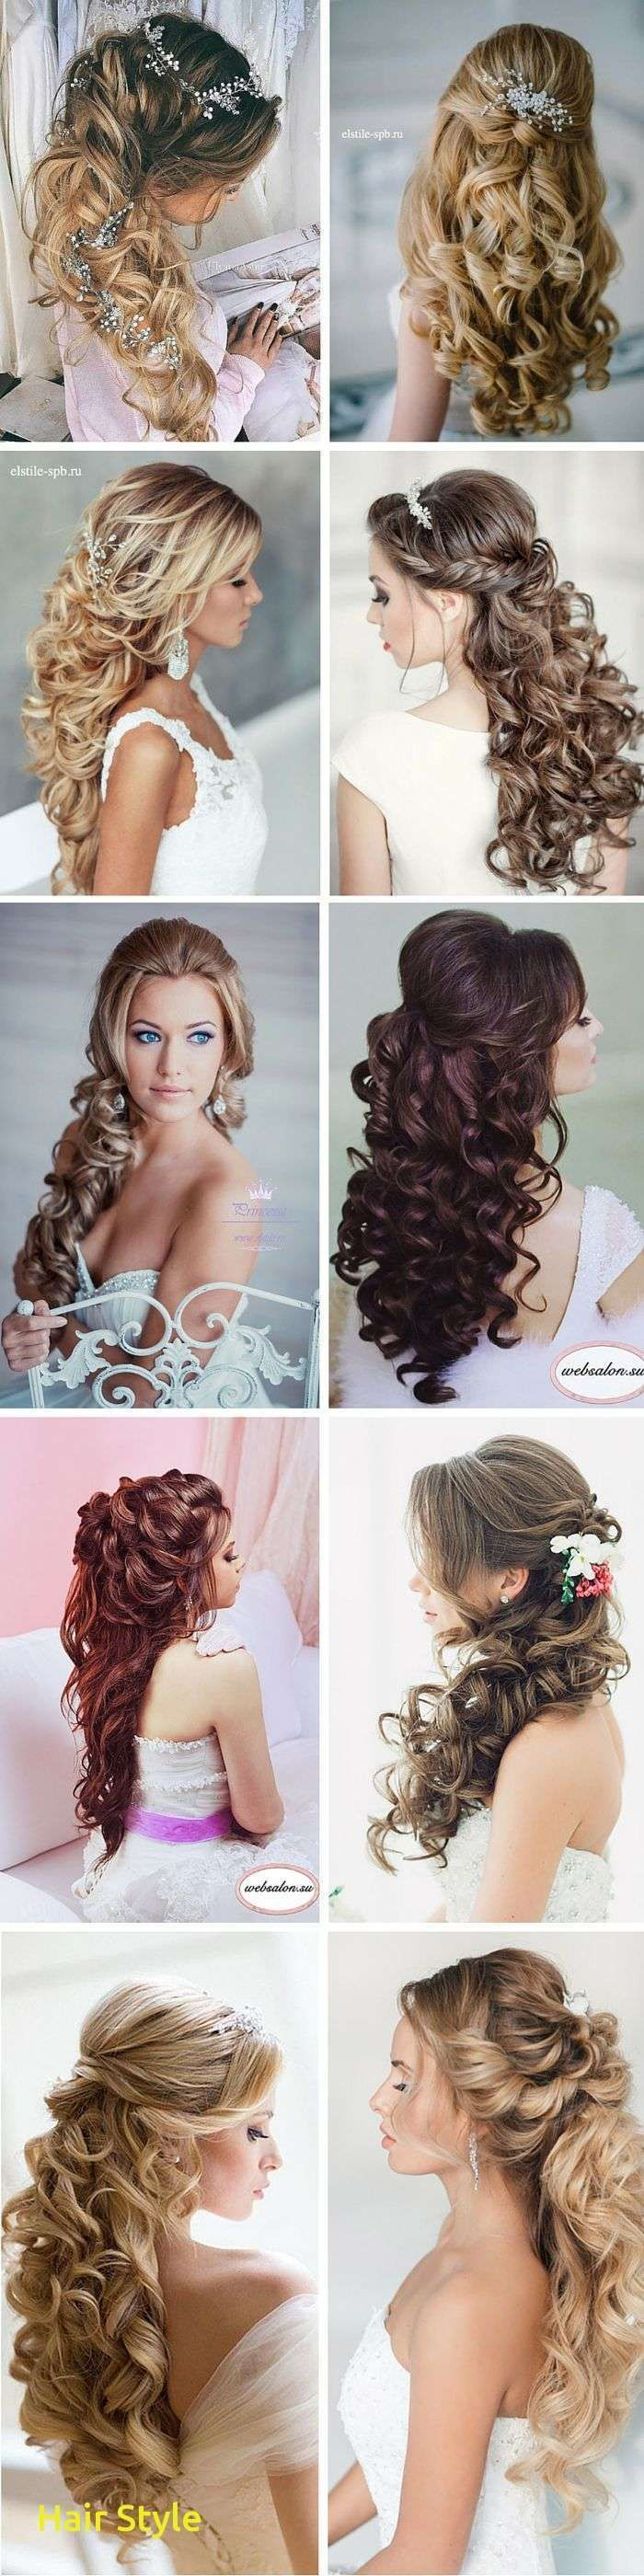 Beautiful wedding hairstyles for long hair half with tiara Beautiful wedding hairstyles for long hair half with tiara #dutt #opening #half #opening #brows hairstyle #brautfrisurhalfopen #veille #ling #curly #down # gorgeous #the #dress #s for #hair #Half #wedding #long #with #beautiful #tiara #brautfrisur #brautfrisurhalboffen #curly #the #dutt # hairstyles #for #hair #halb #half-open # half #wedding #long #elocking #with #open #mouths #beautiful # Tiara # Gorgeous